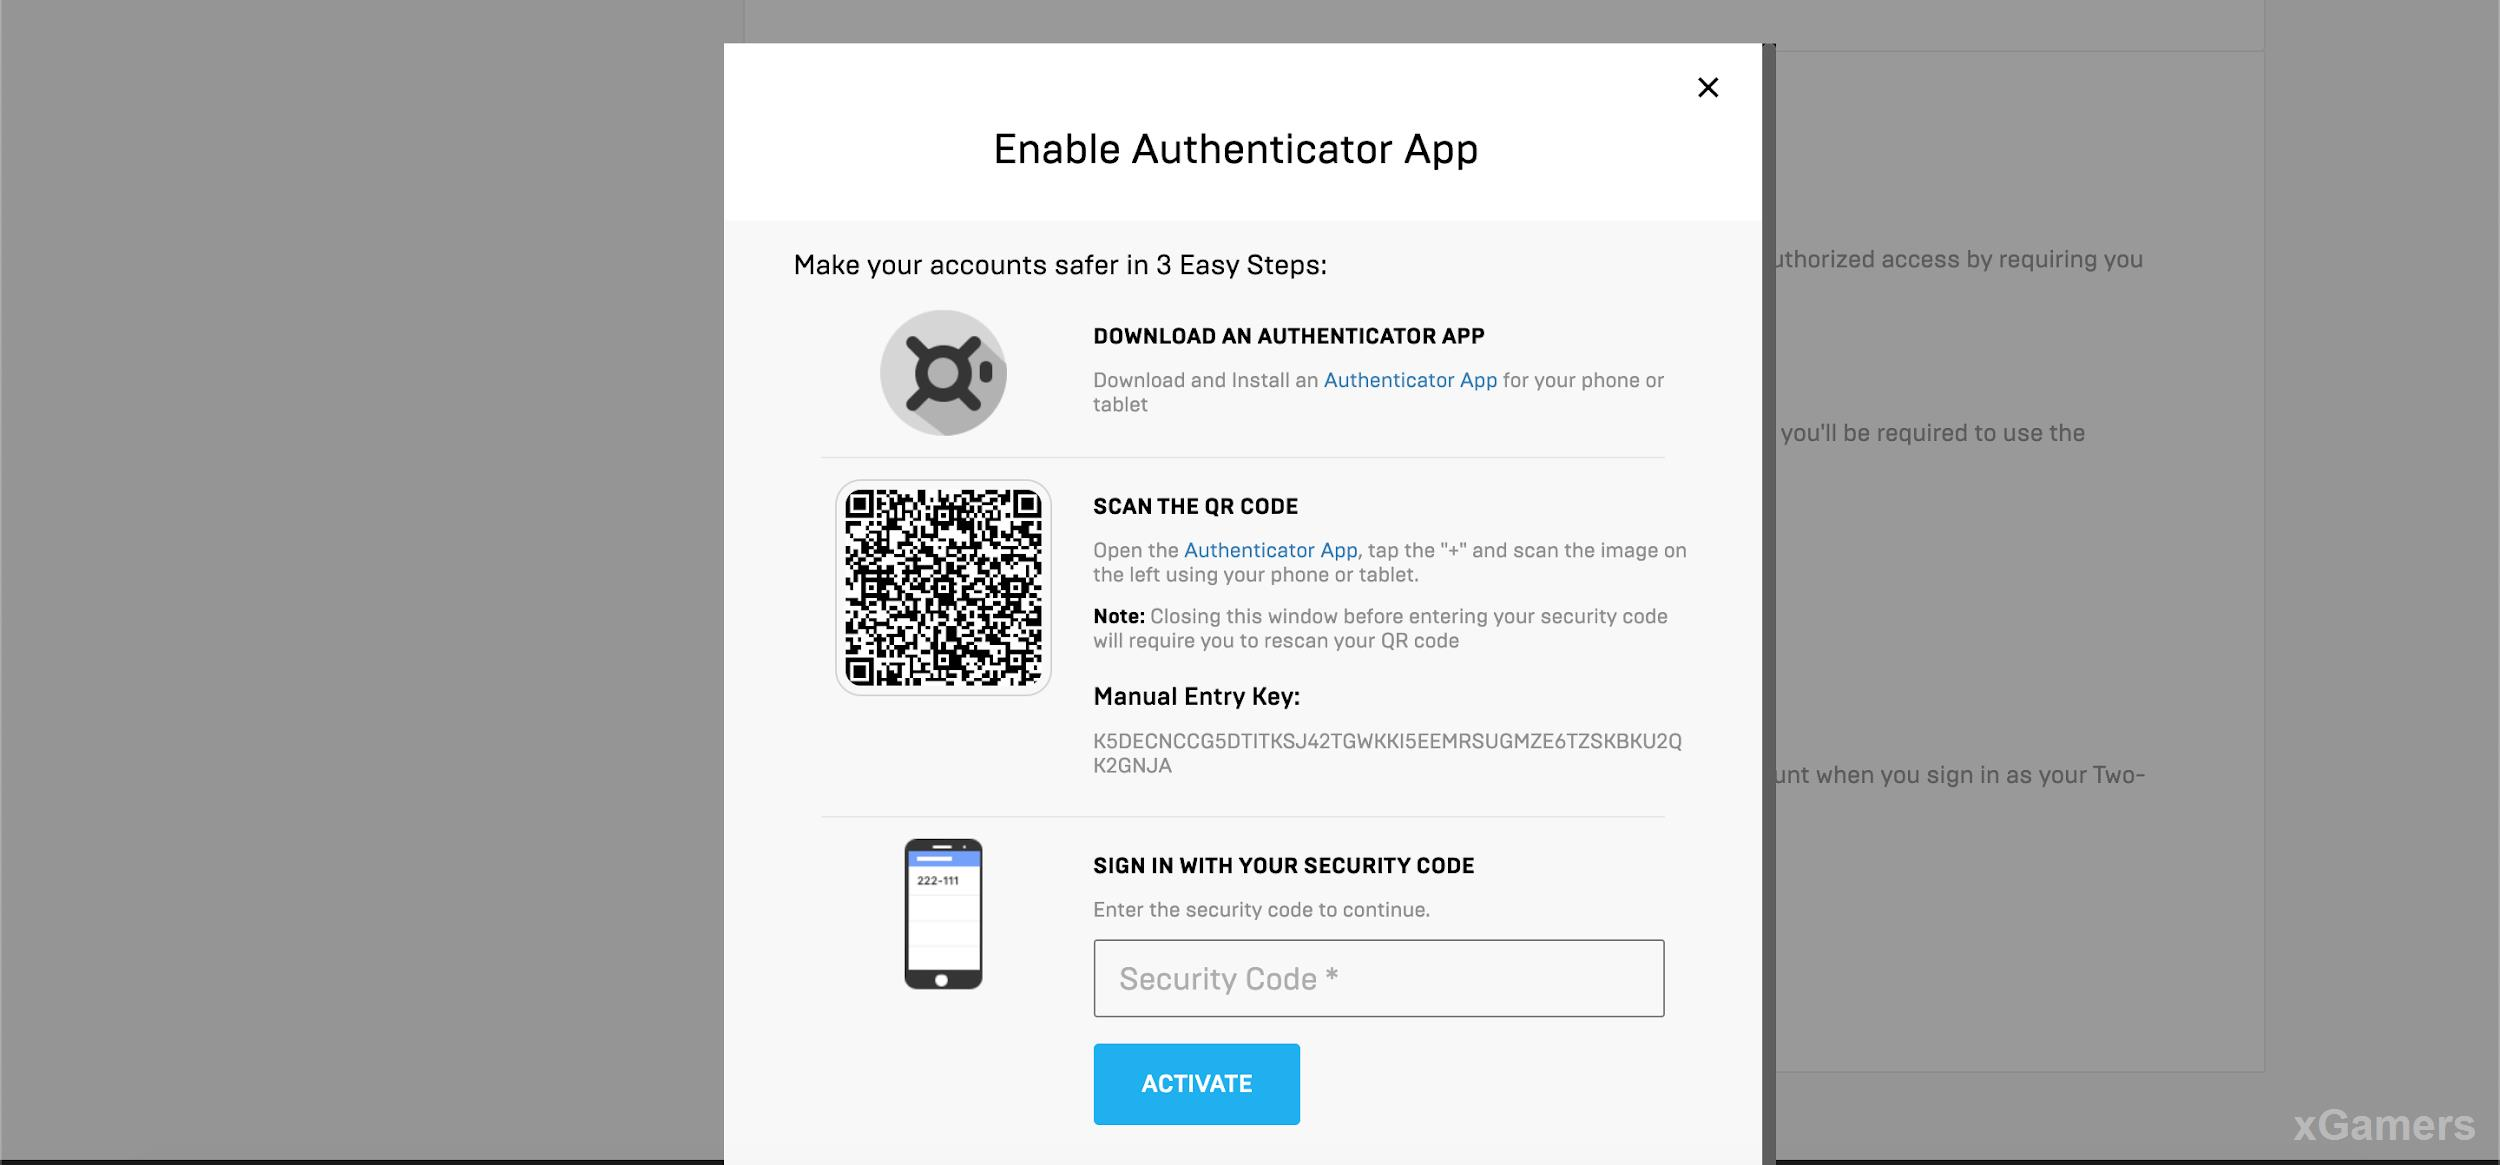 Enable Authenticator App - Make your accounts safer in 3 Easy Steps